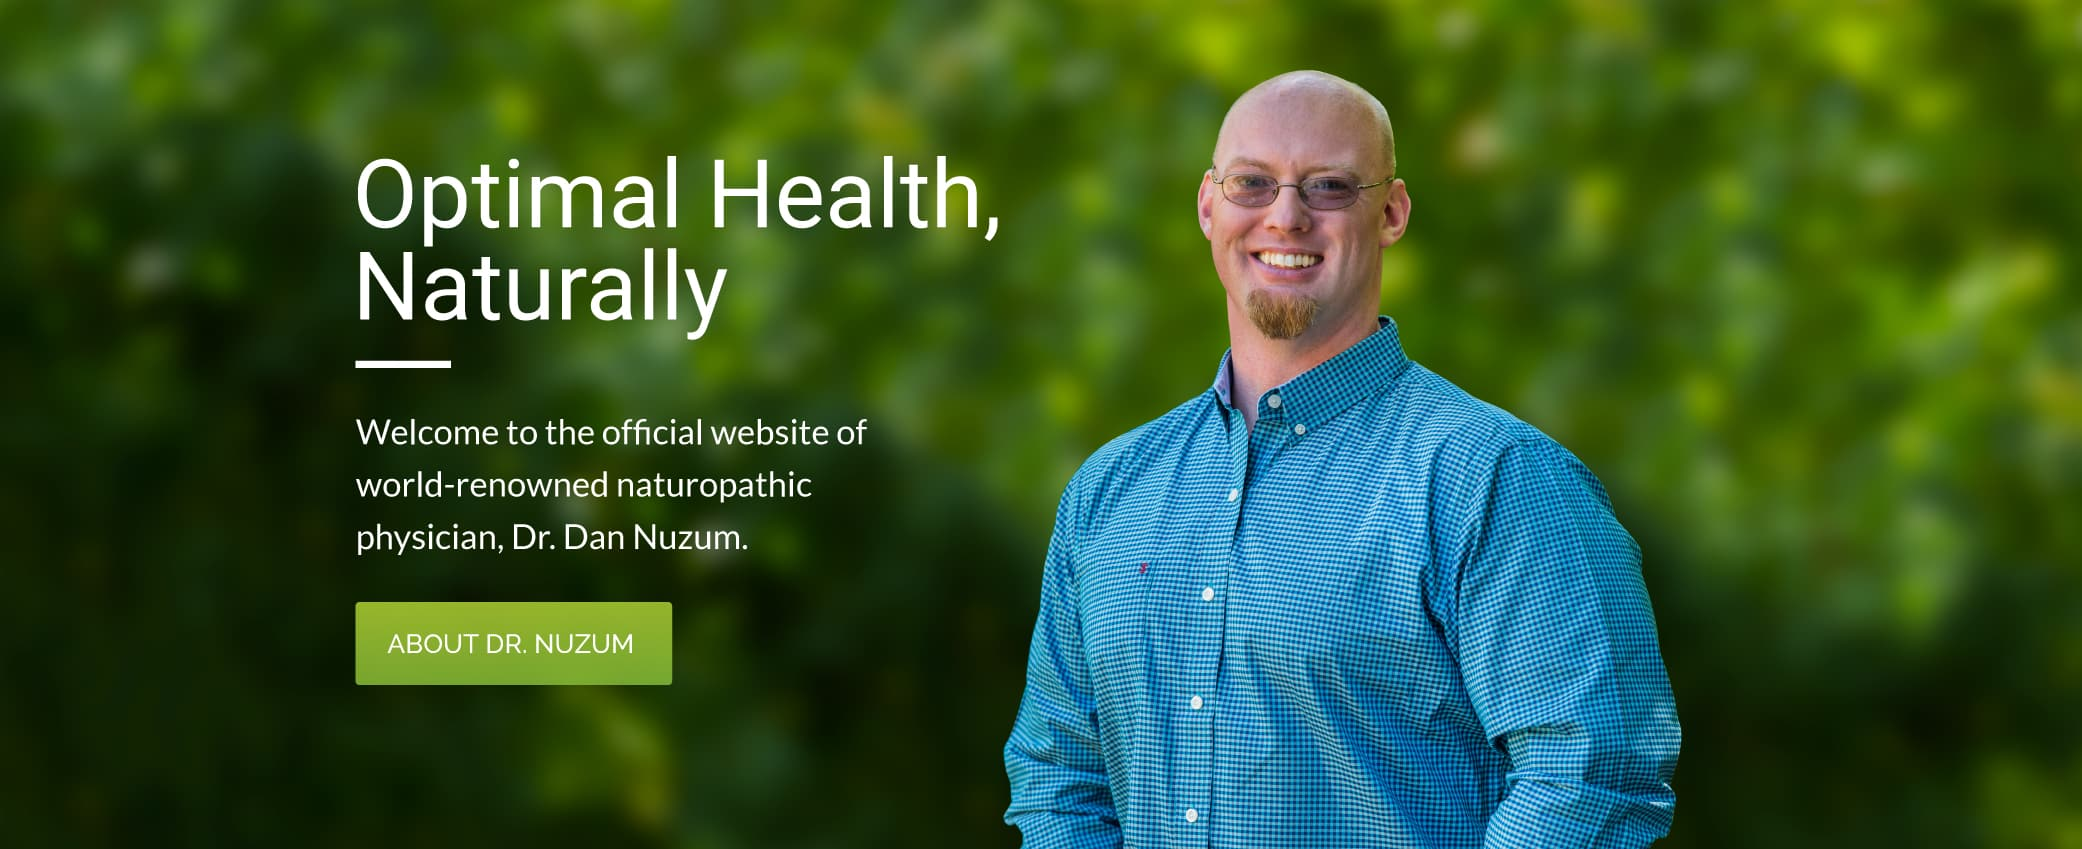 Welcome to the official website of world-renowned naturopathic physician, Dr. Dan Nuzum.